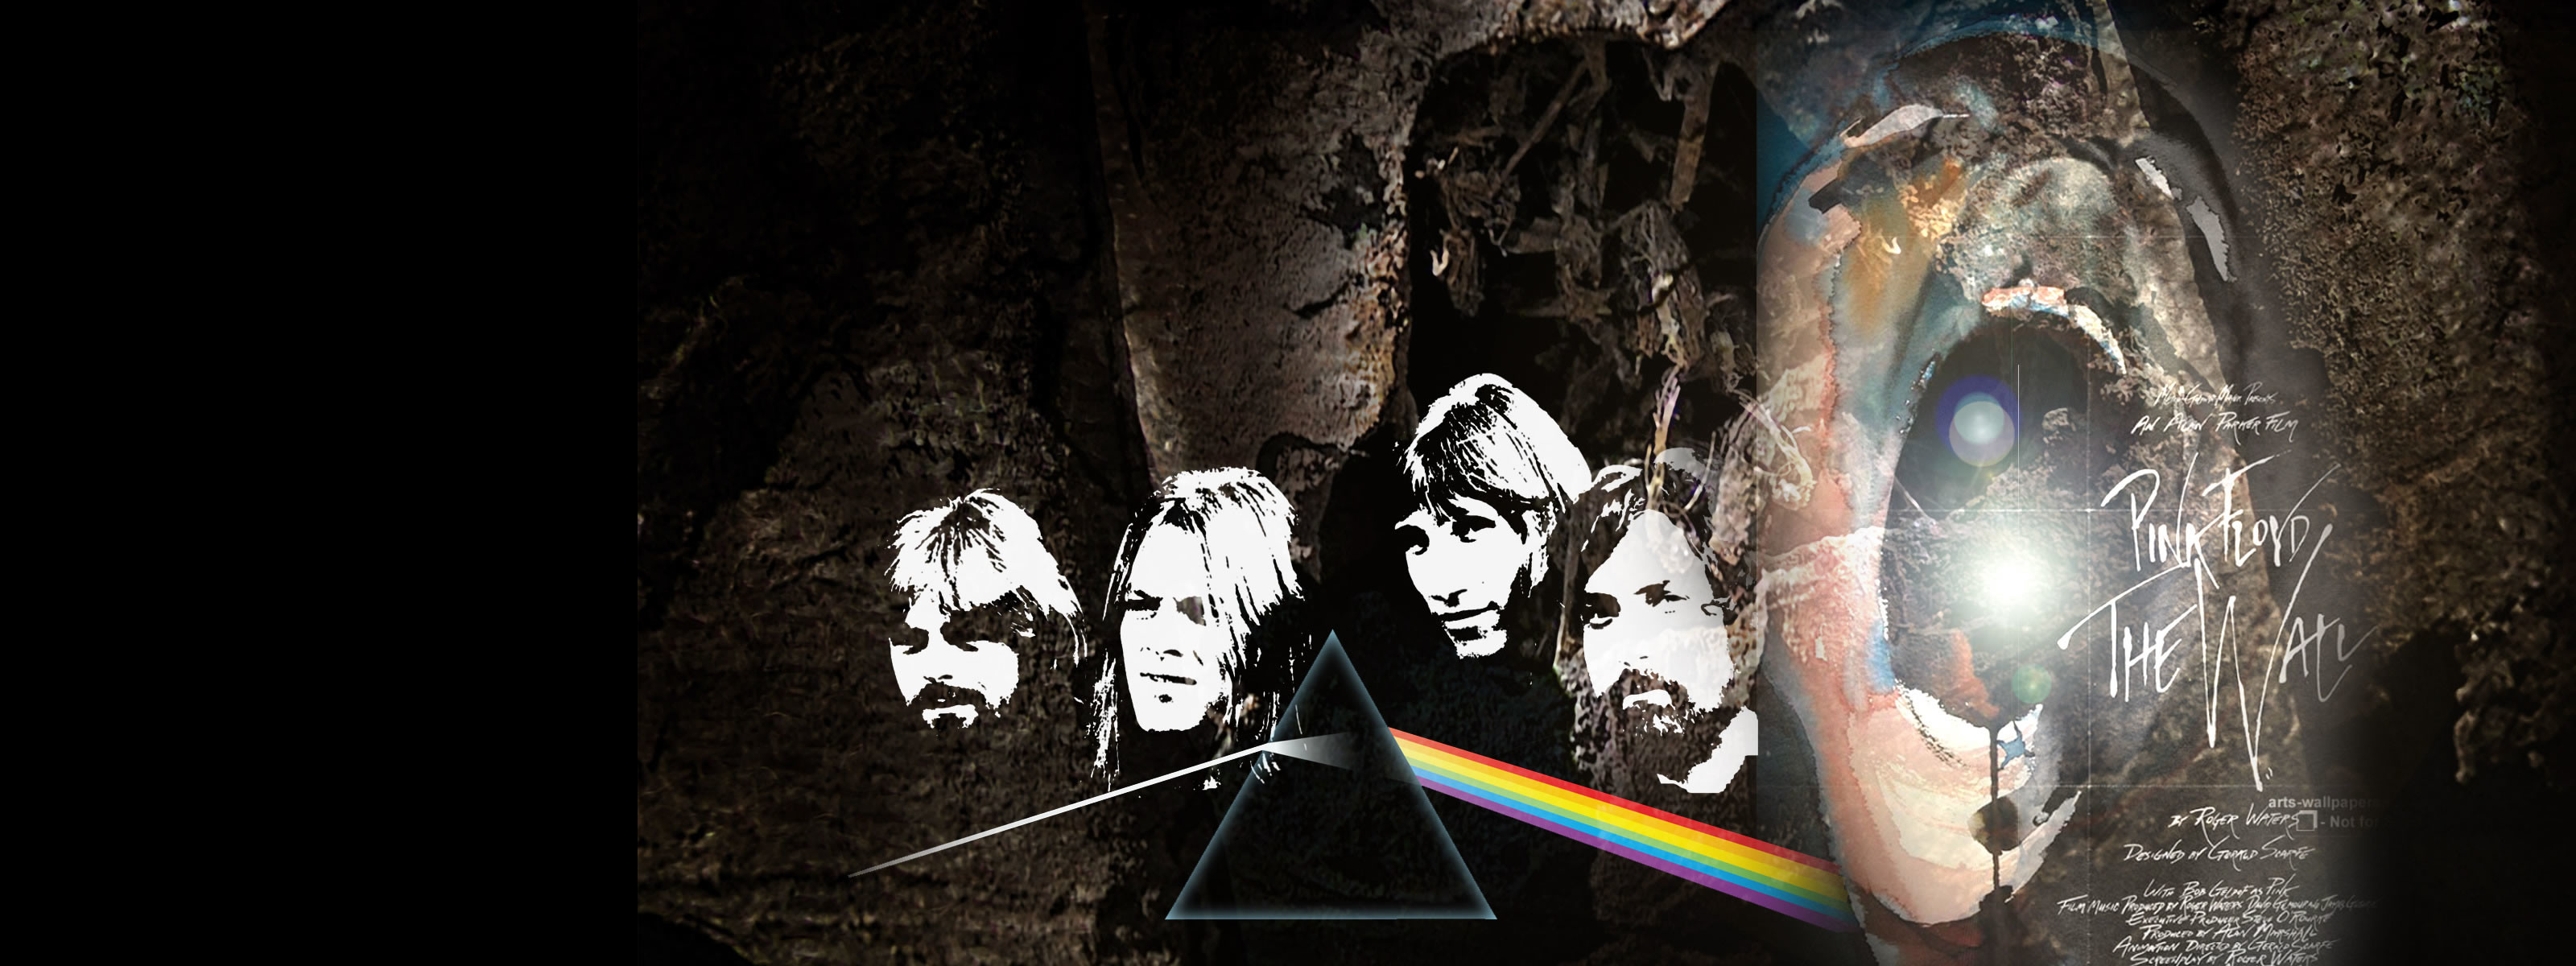 3200x1200 pink floyd wallpaper